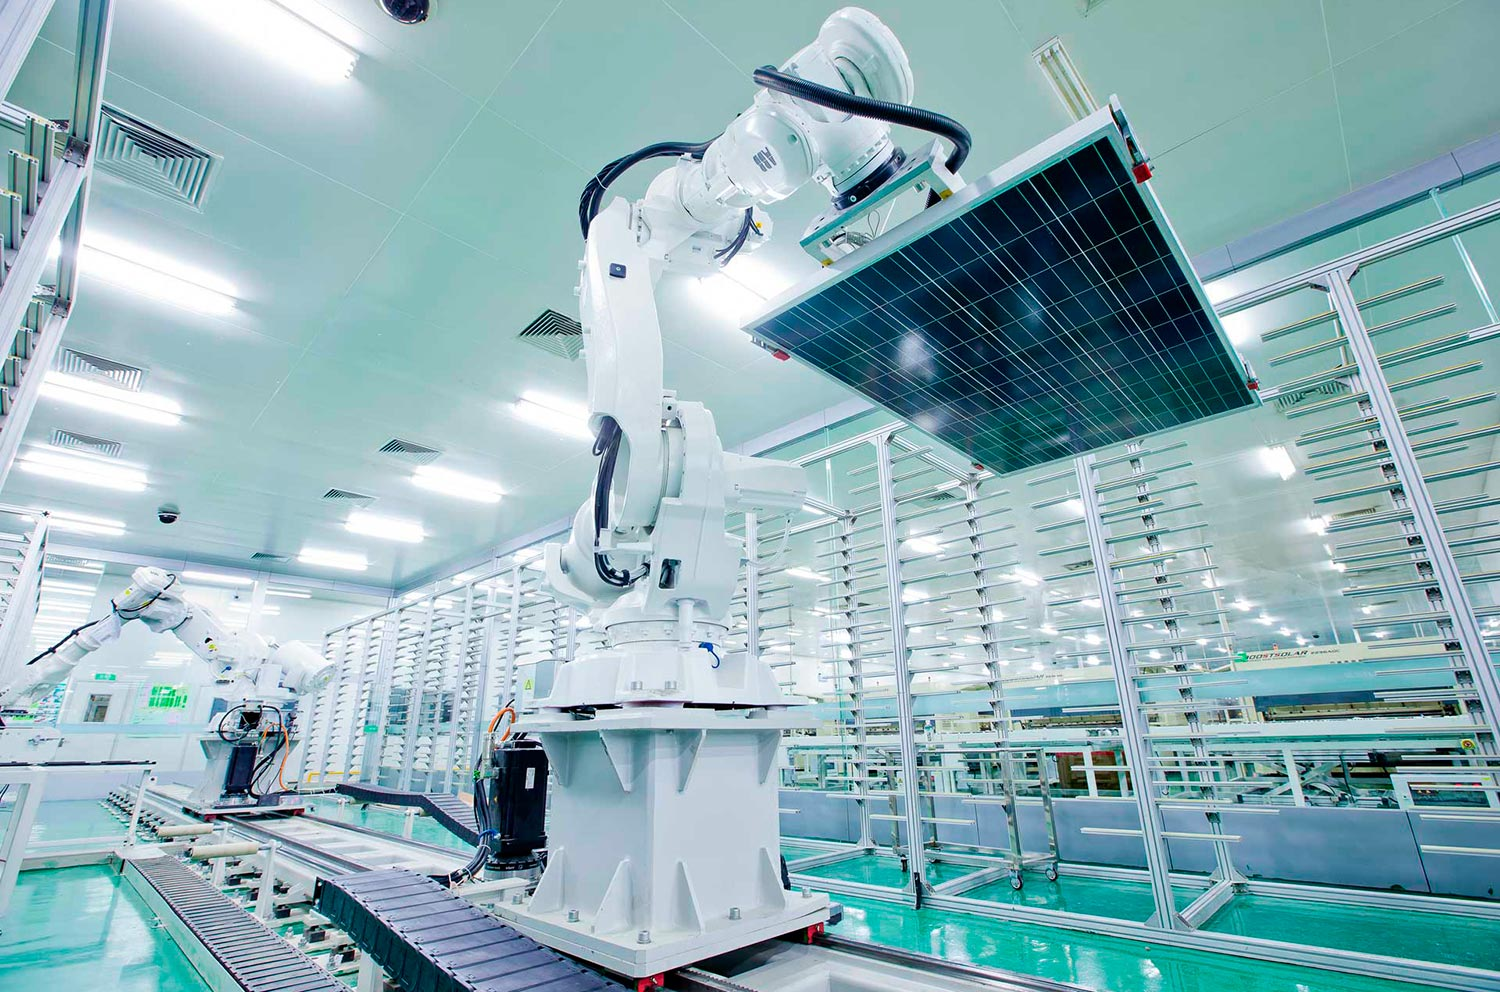 Production of photovoltaic modules Jinko Solar